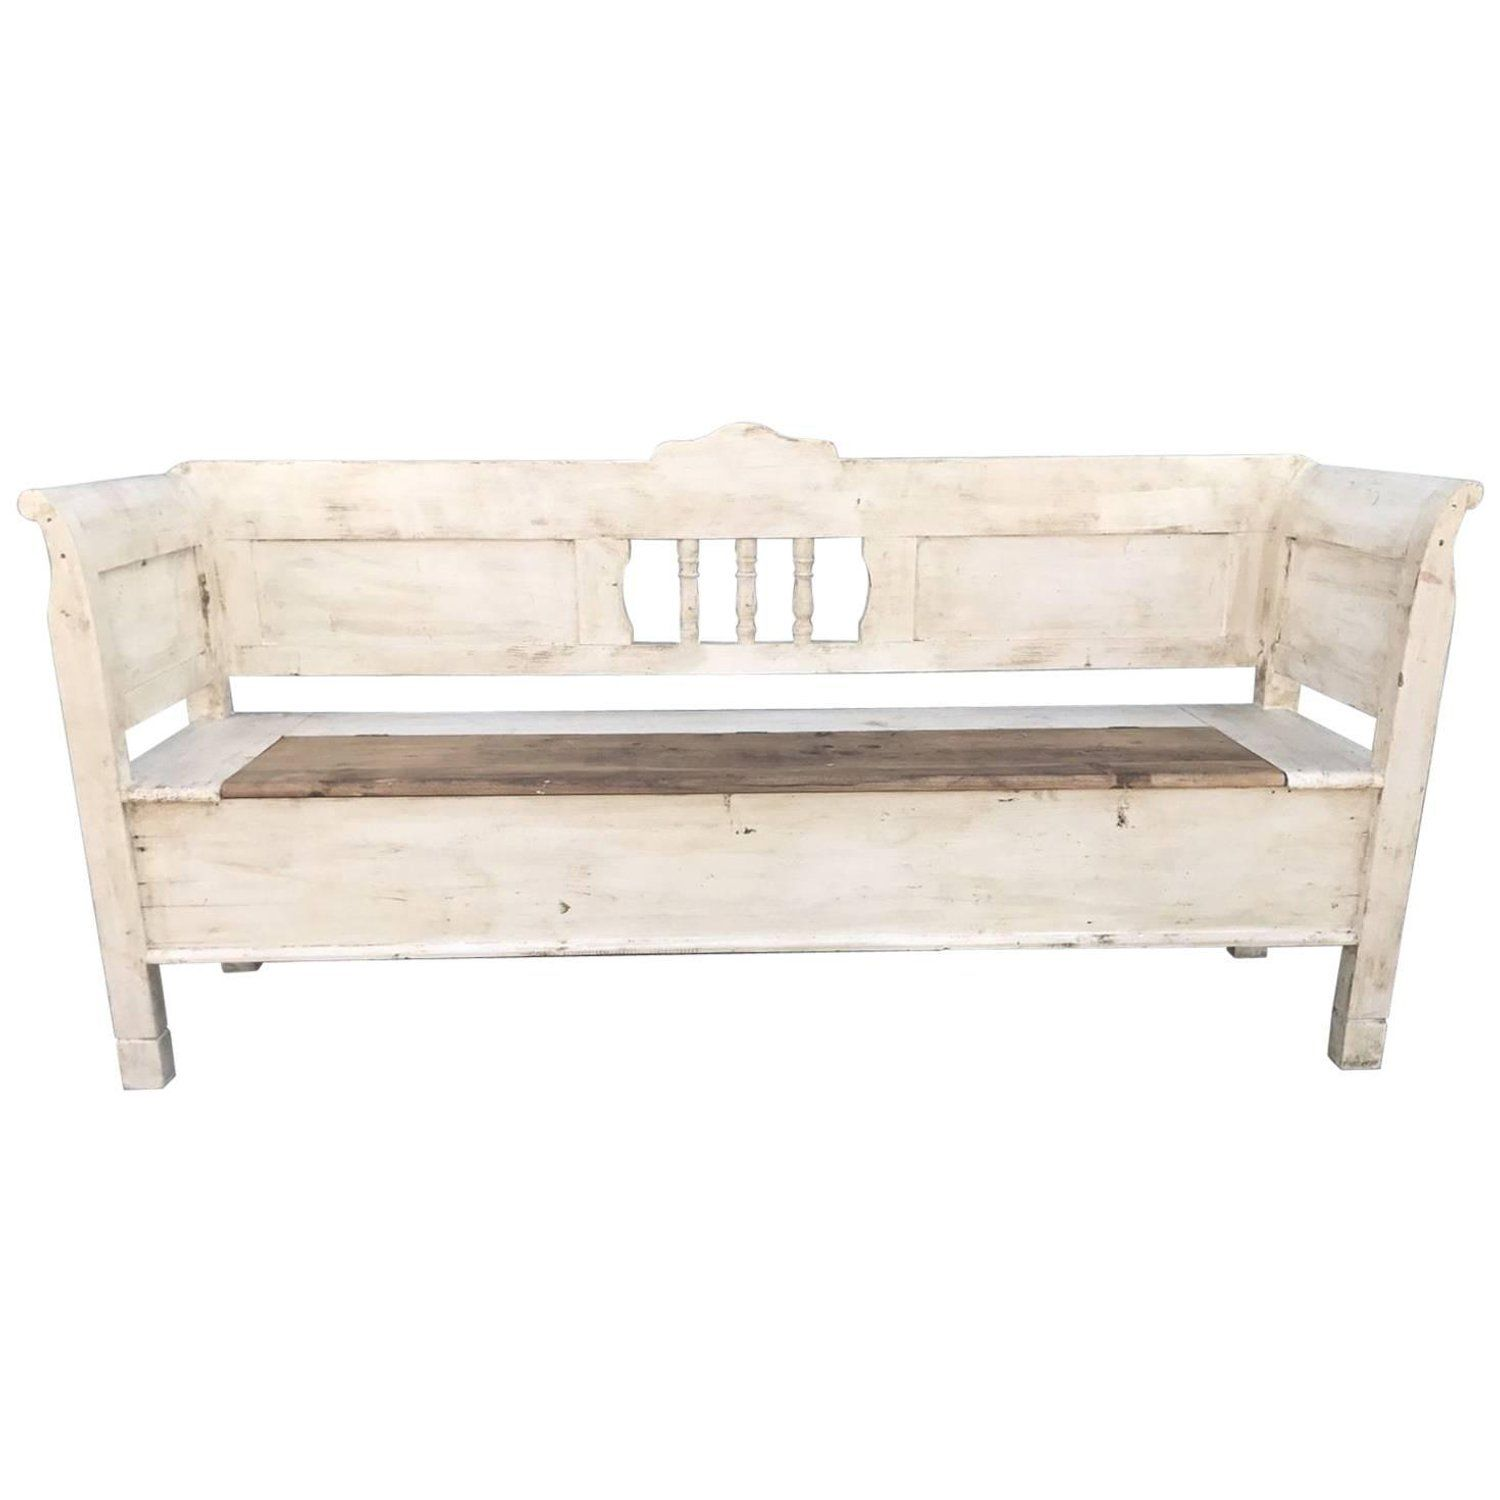 Surprising French Antique Vintage Bench Seat Settle Painted Pdpeps Interior Chair Design Pdpepsorg